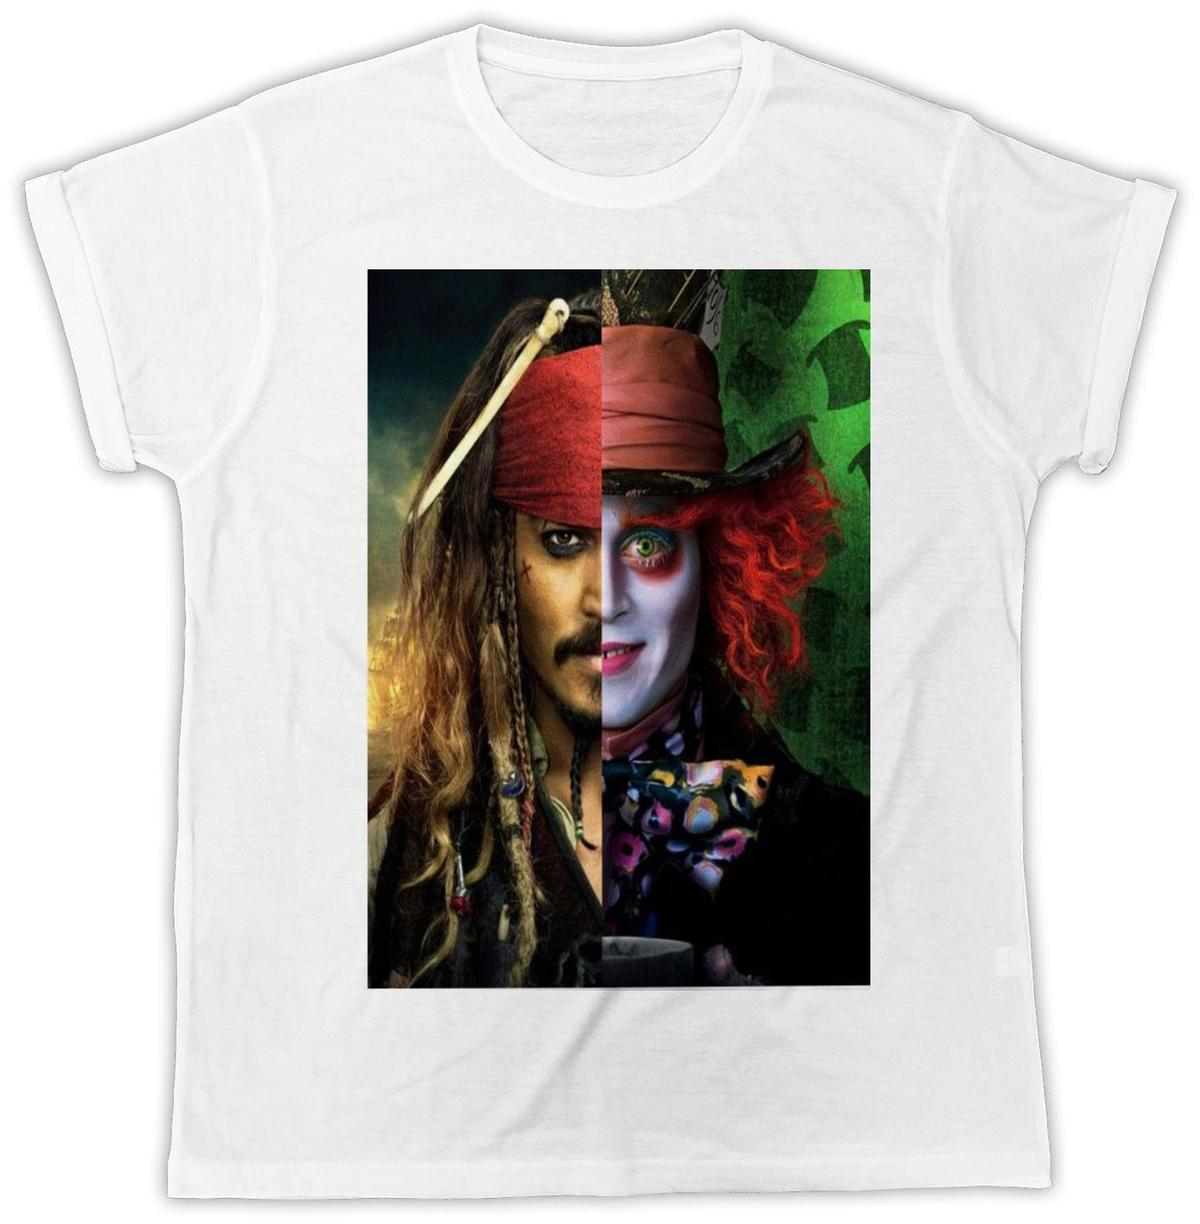 JOHNNY DEPP JACK SPARROW MAD HATTER IDEAL GIFT RETRO UNISEX FASHION TSHIRT 2859 Men'S High Quality Custom Printed Tops Hipster Tees